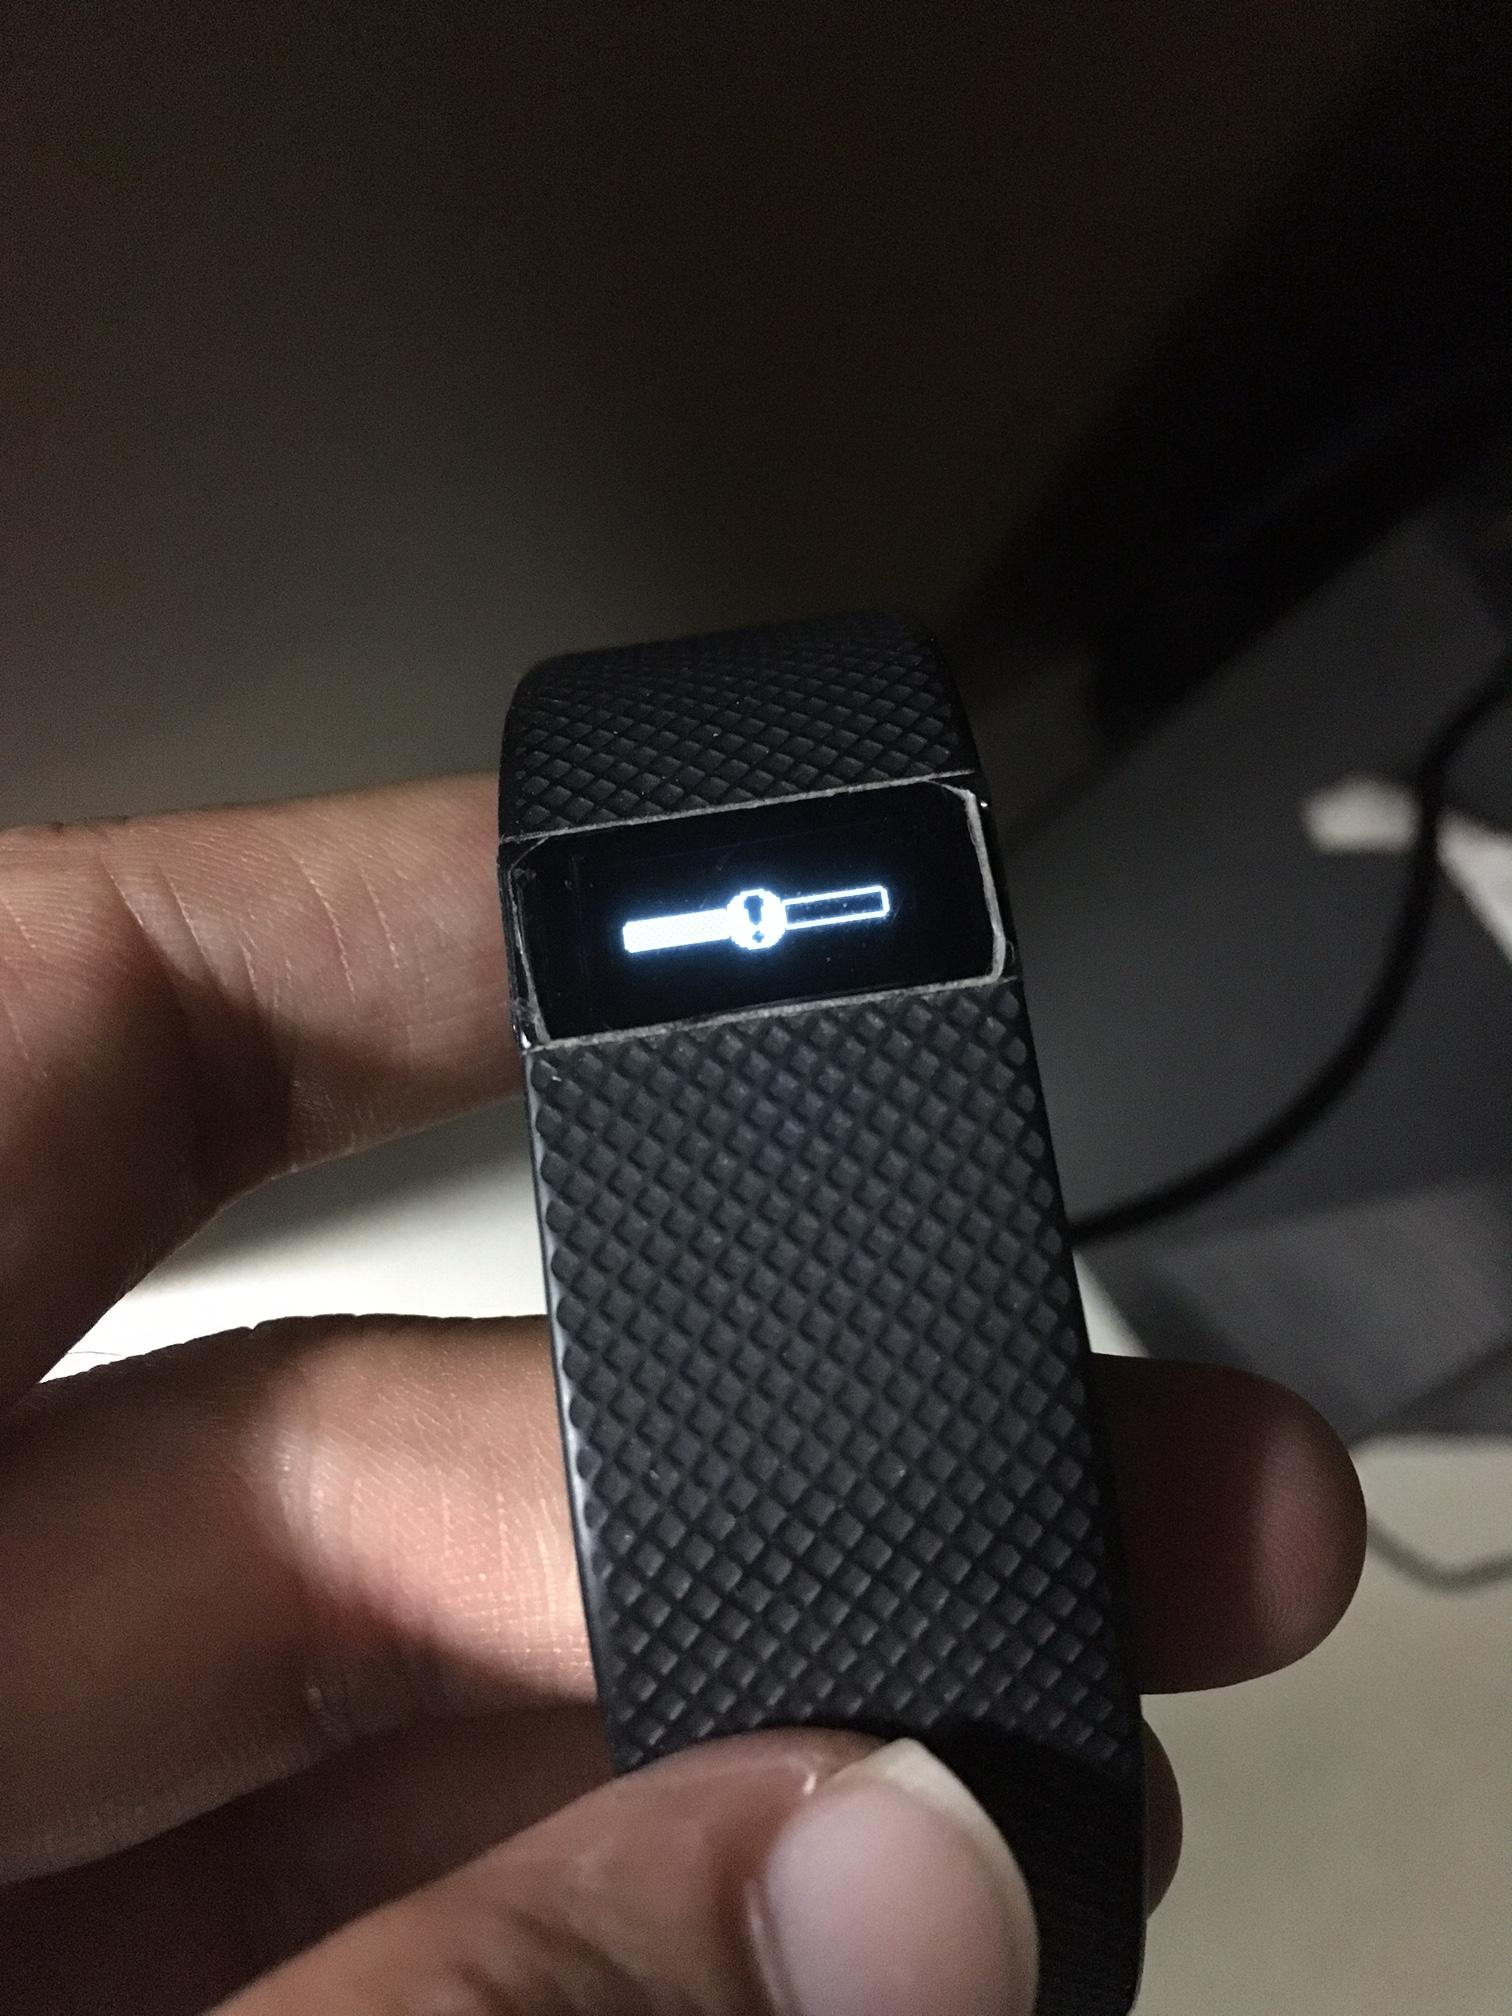 Firmware update starts/stuck when already on v122 - Fitbit Community